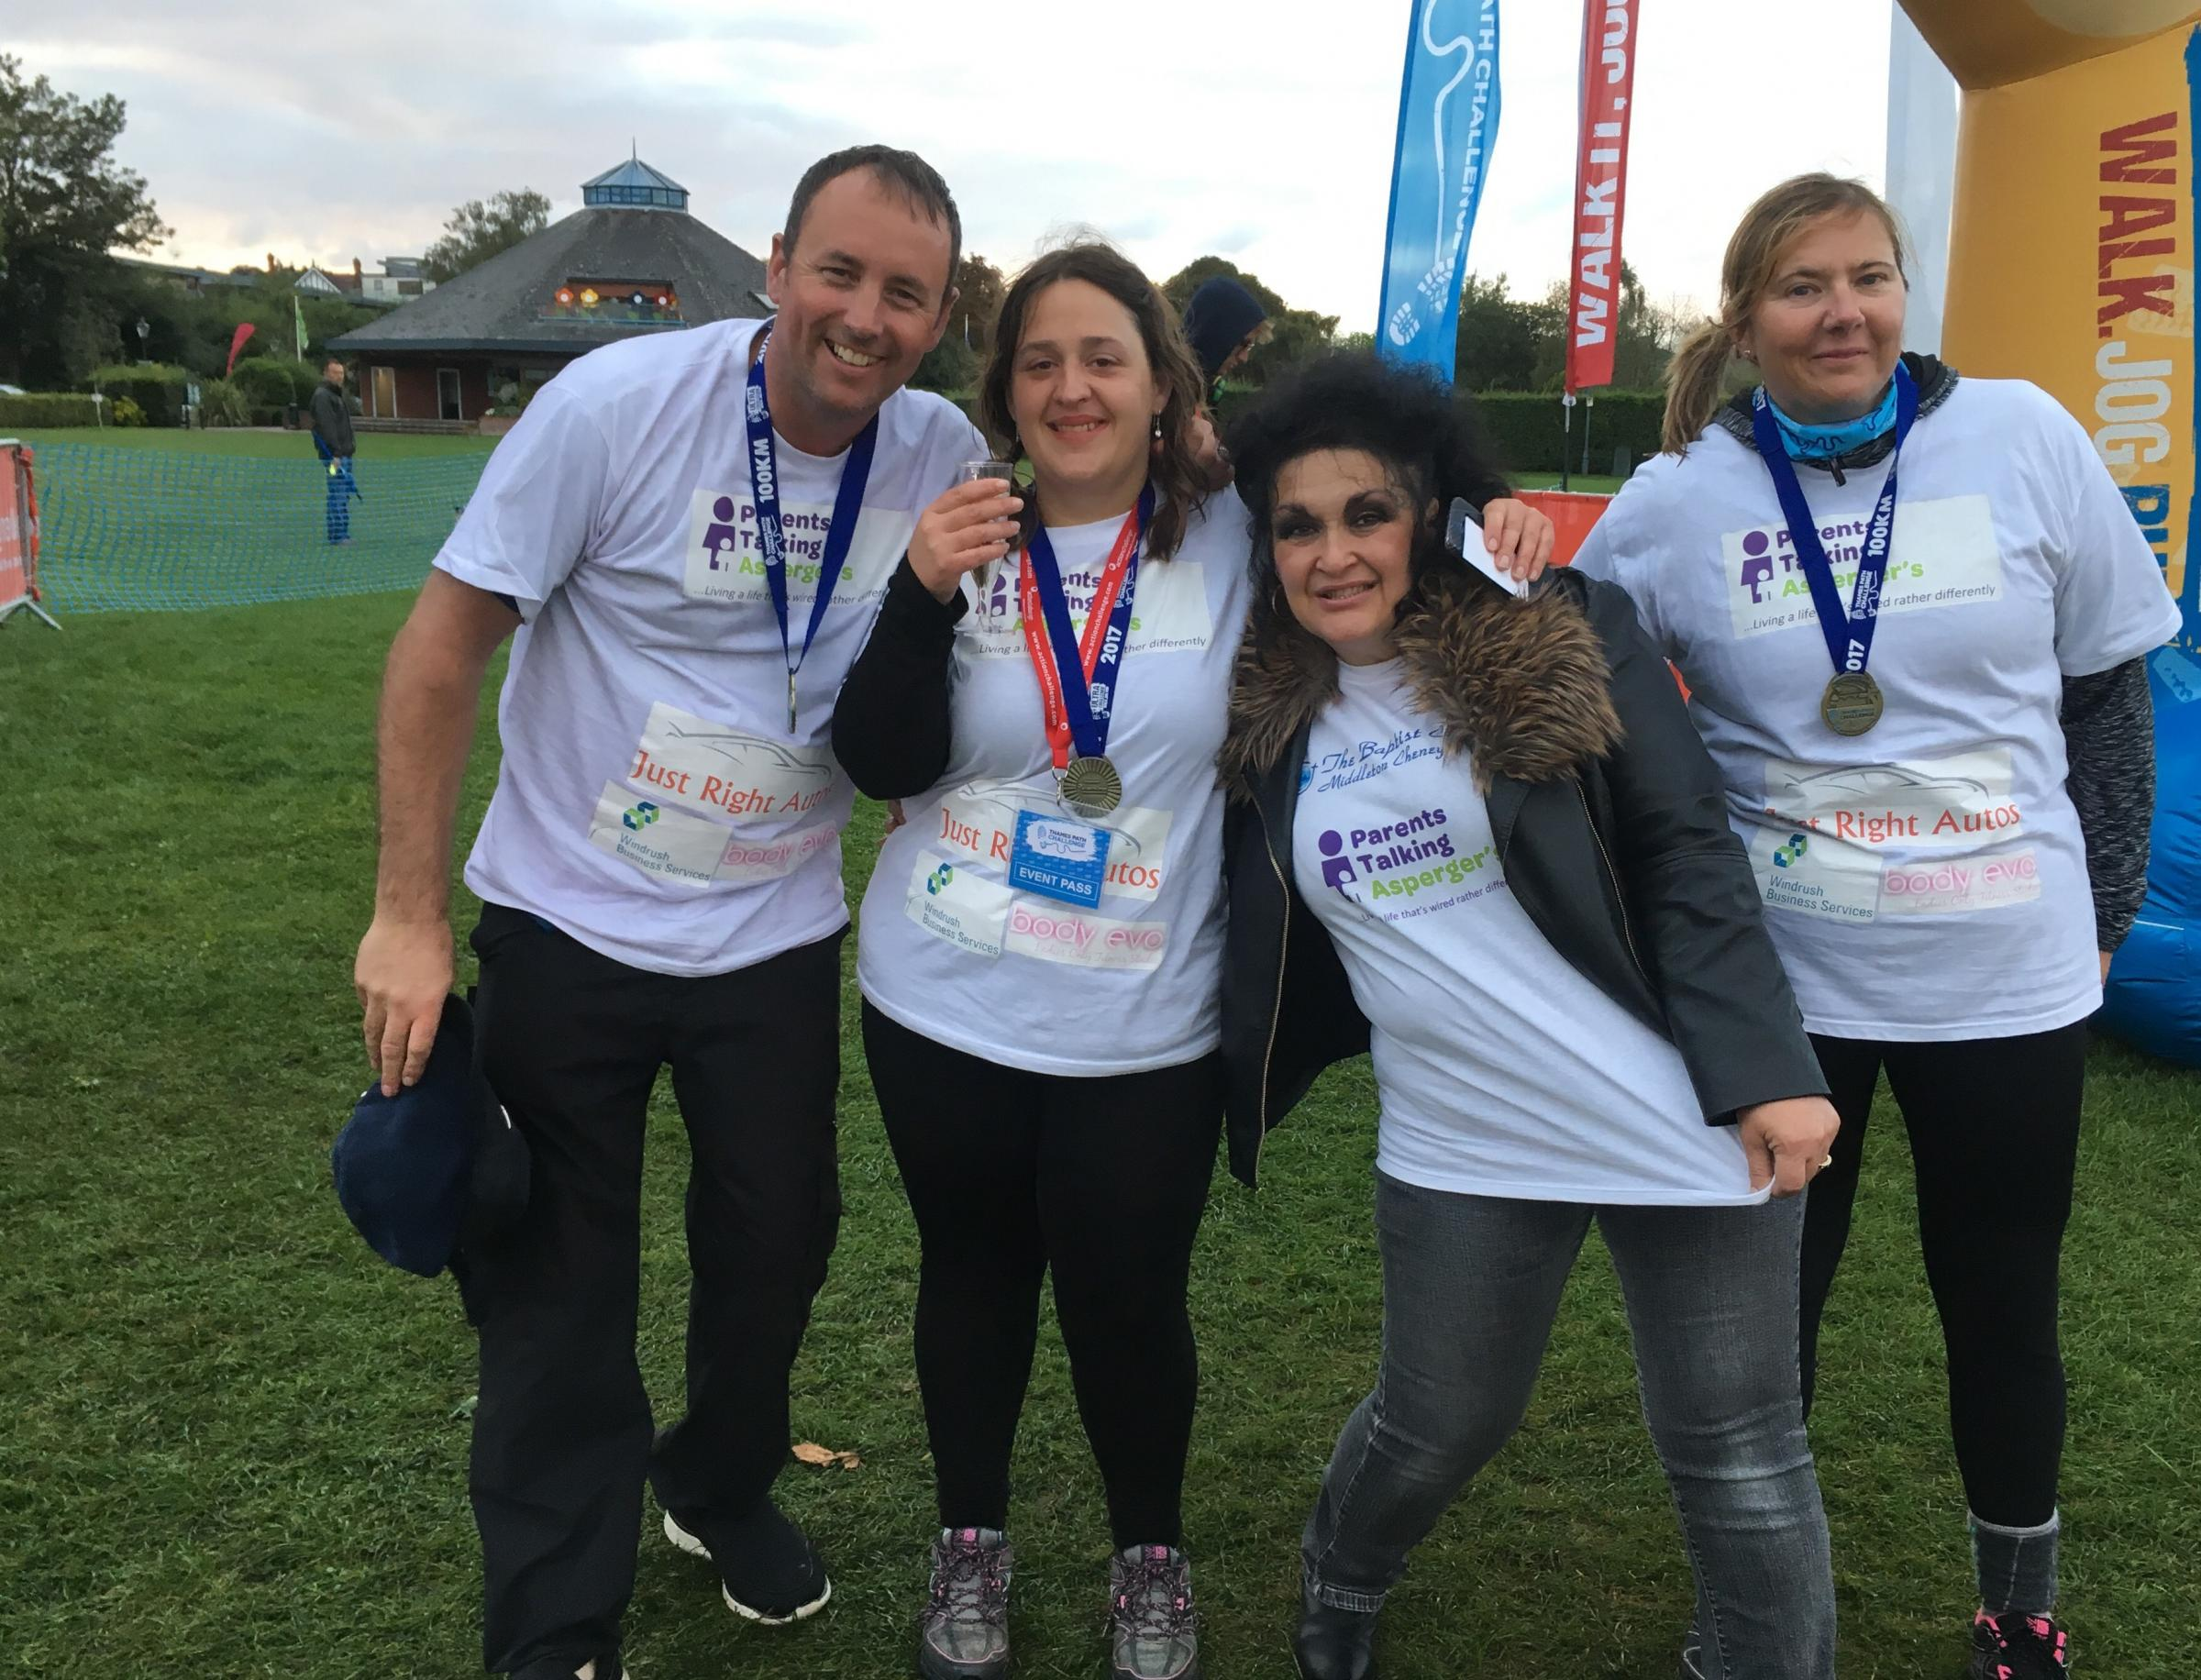 Oxfordmail Parents from Witney walk 100km to help